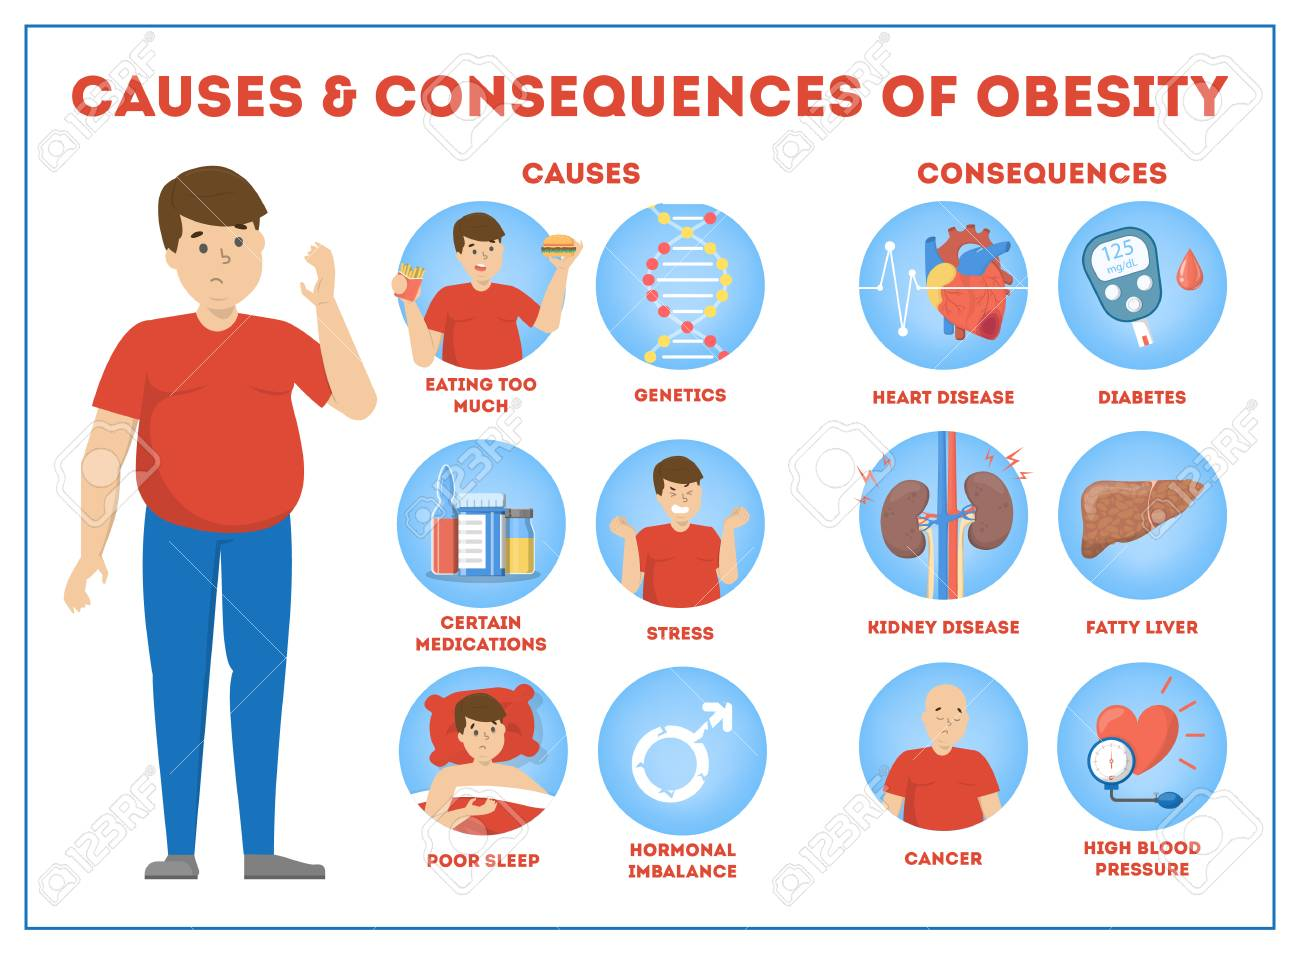 Obesity causes and consequences infographic for overweight - 116897627